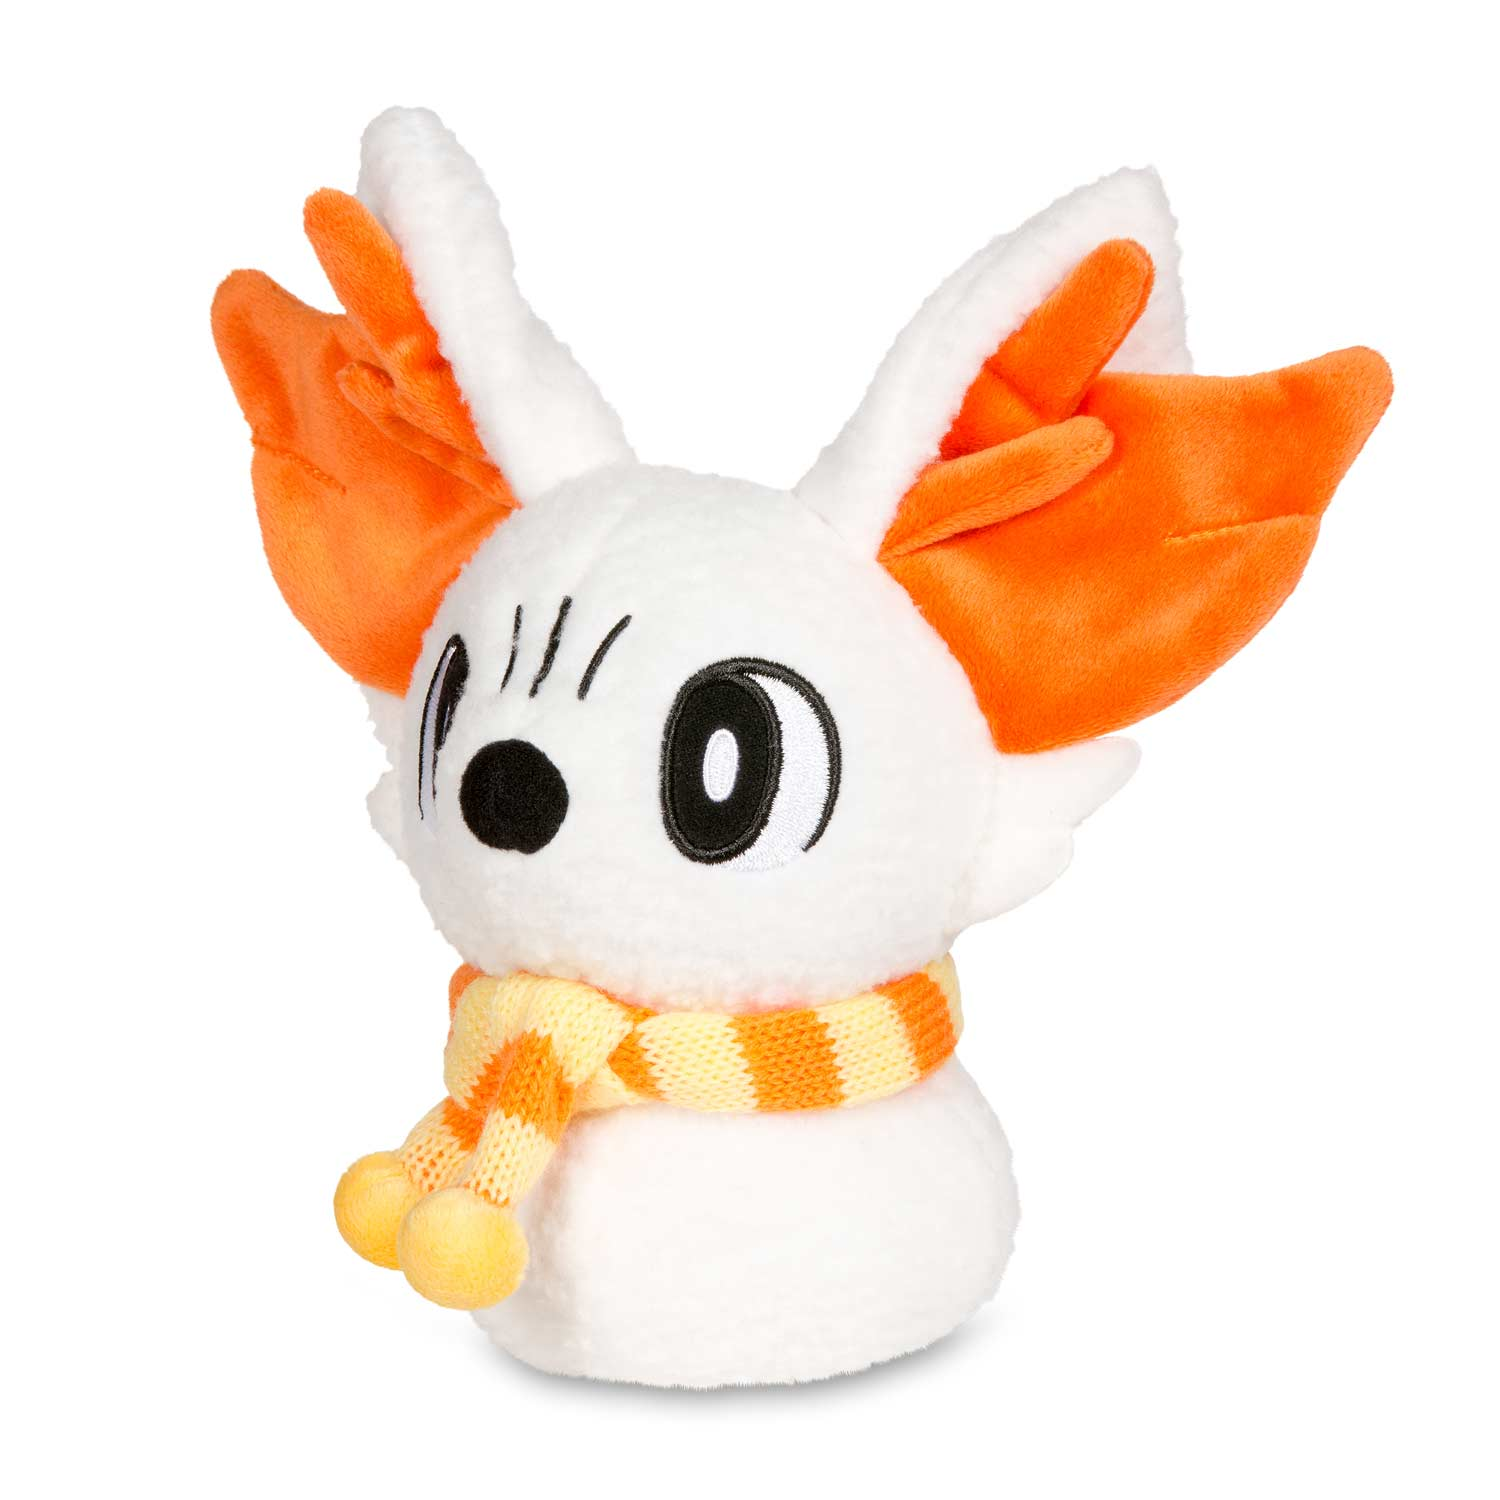 fennekin plush holiday snow pokmon center original